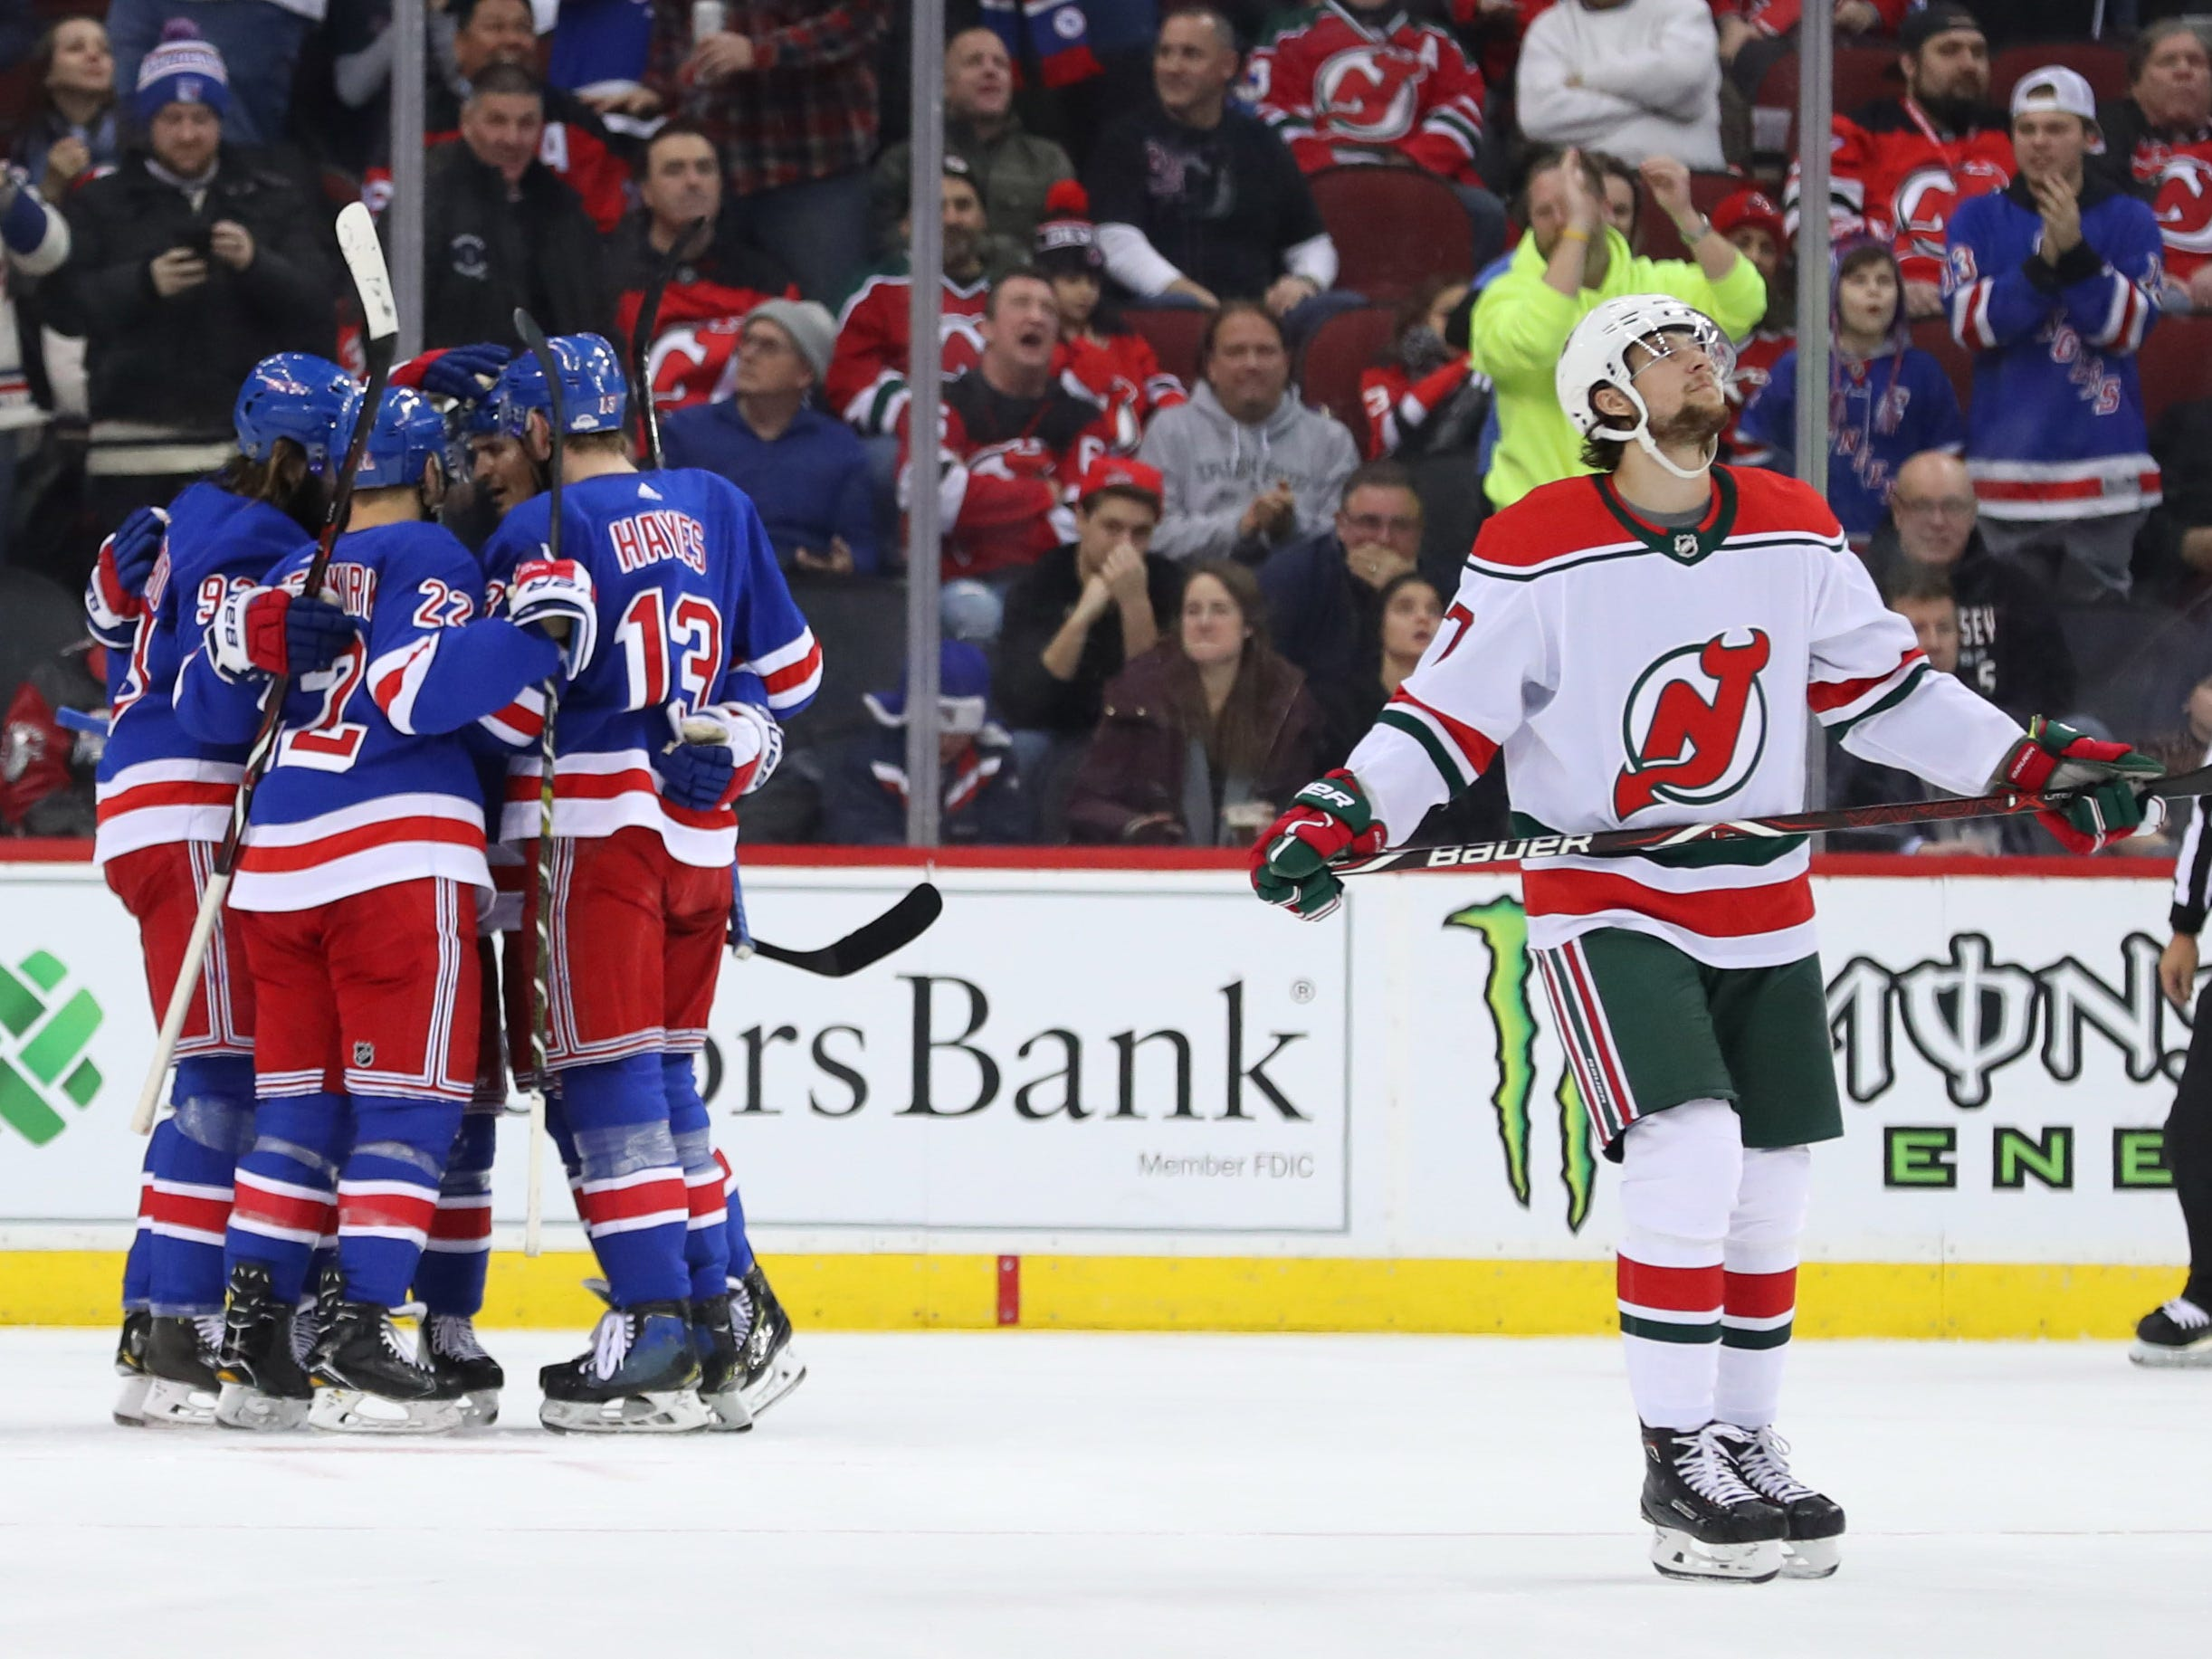 Jan 31, 2019; Newark, NJ, USA; The New York Rangers celebrate a goal by New York Rangers center Mika Zibanejad (93) during the second period of their game against the New Jersey Devils at Prudential Center.